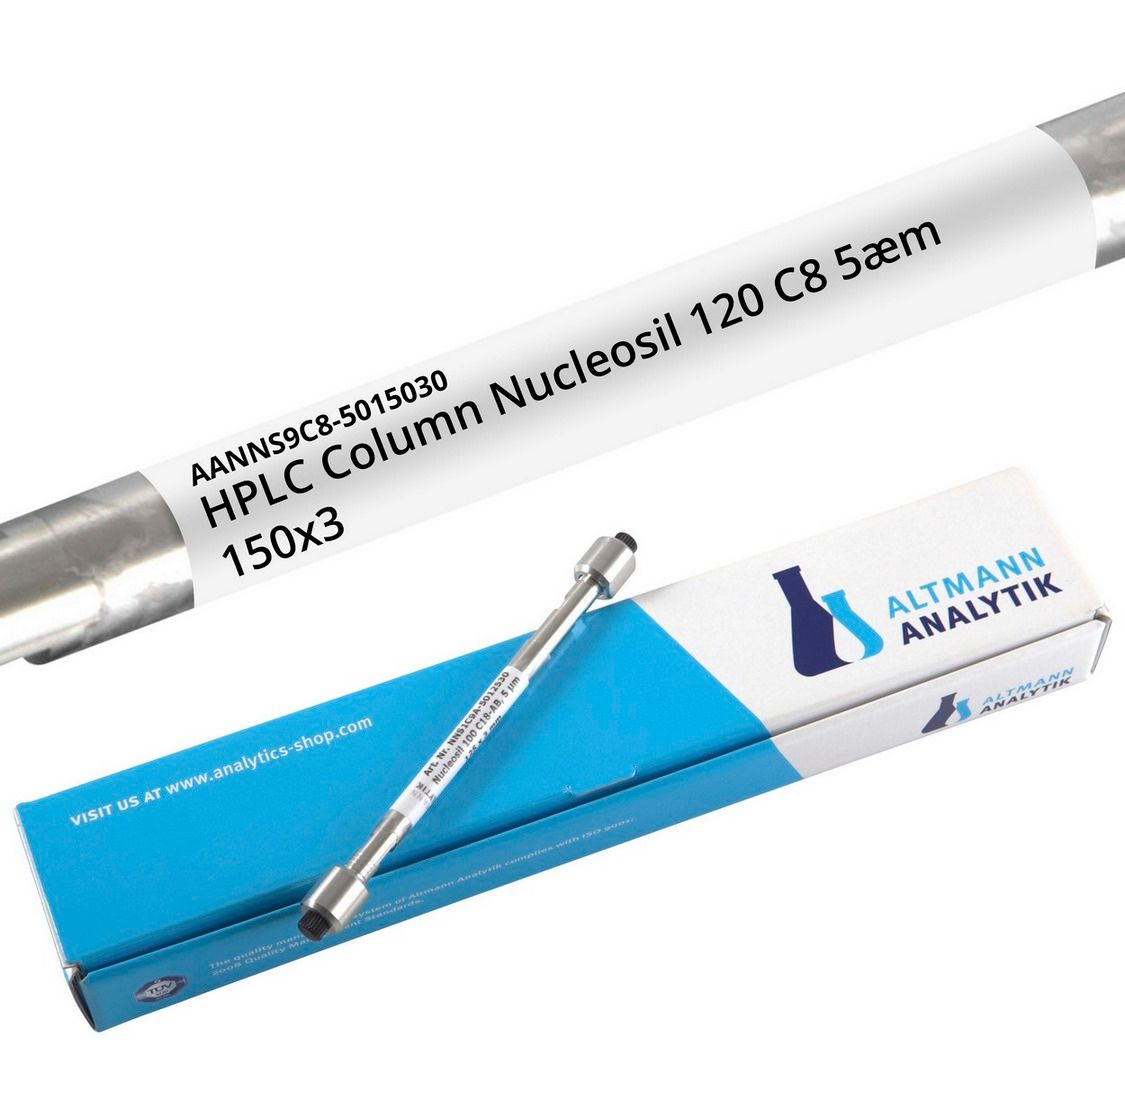 HPLC Column Nucleosil 120 C8 5µm 150x3 mm, 120A